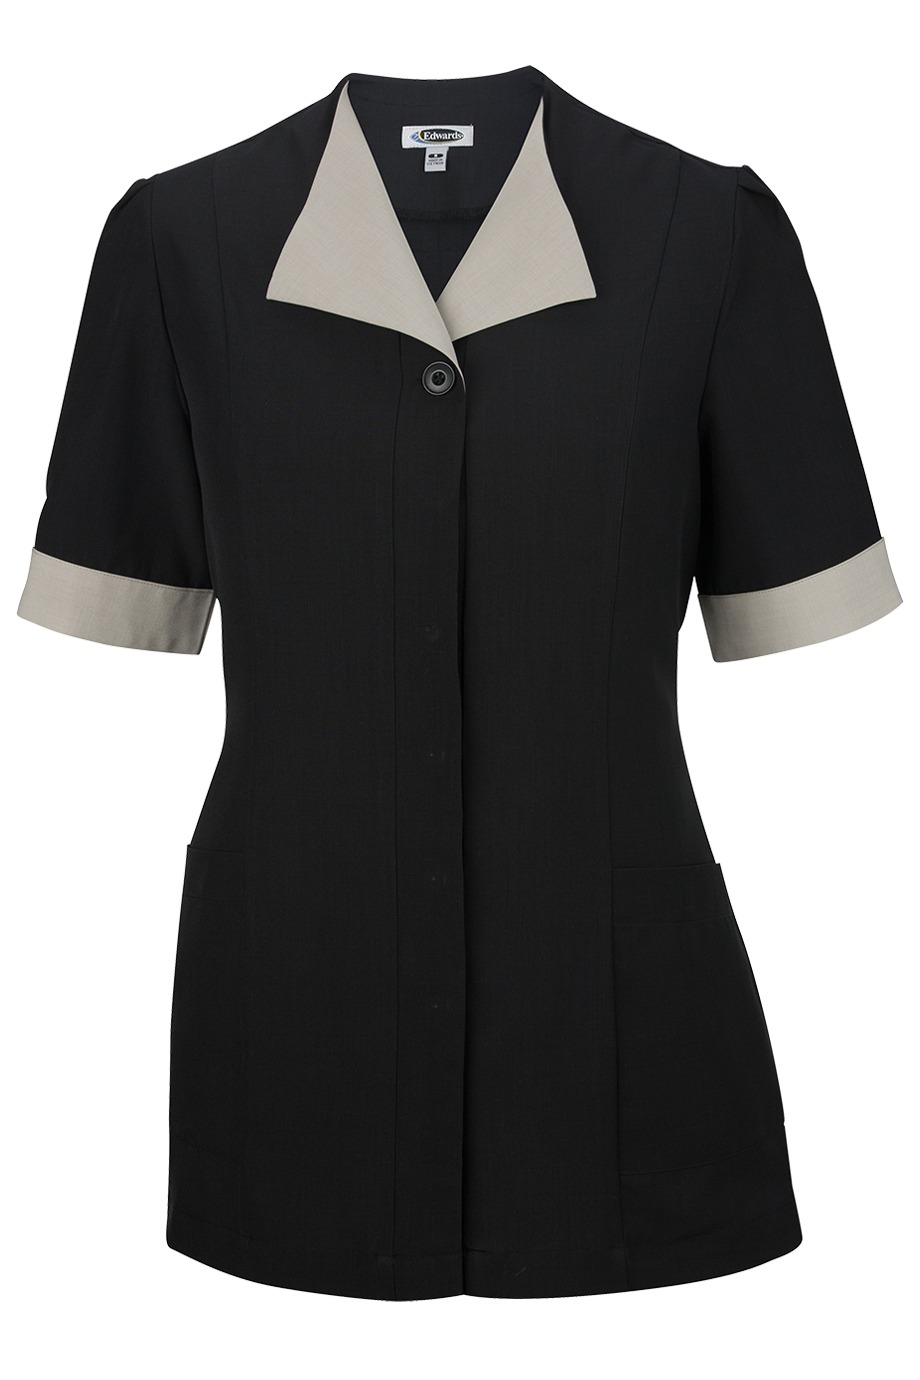 Edwards Garment 7280 - Pinnacle Housekeeping Tunic